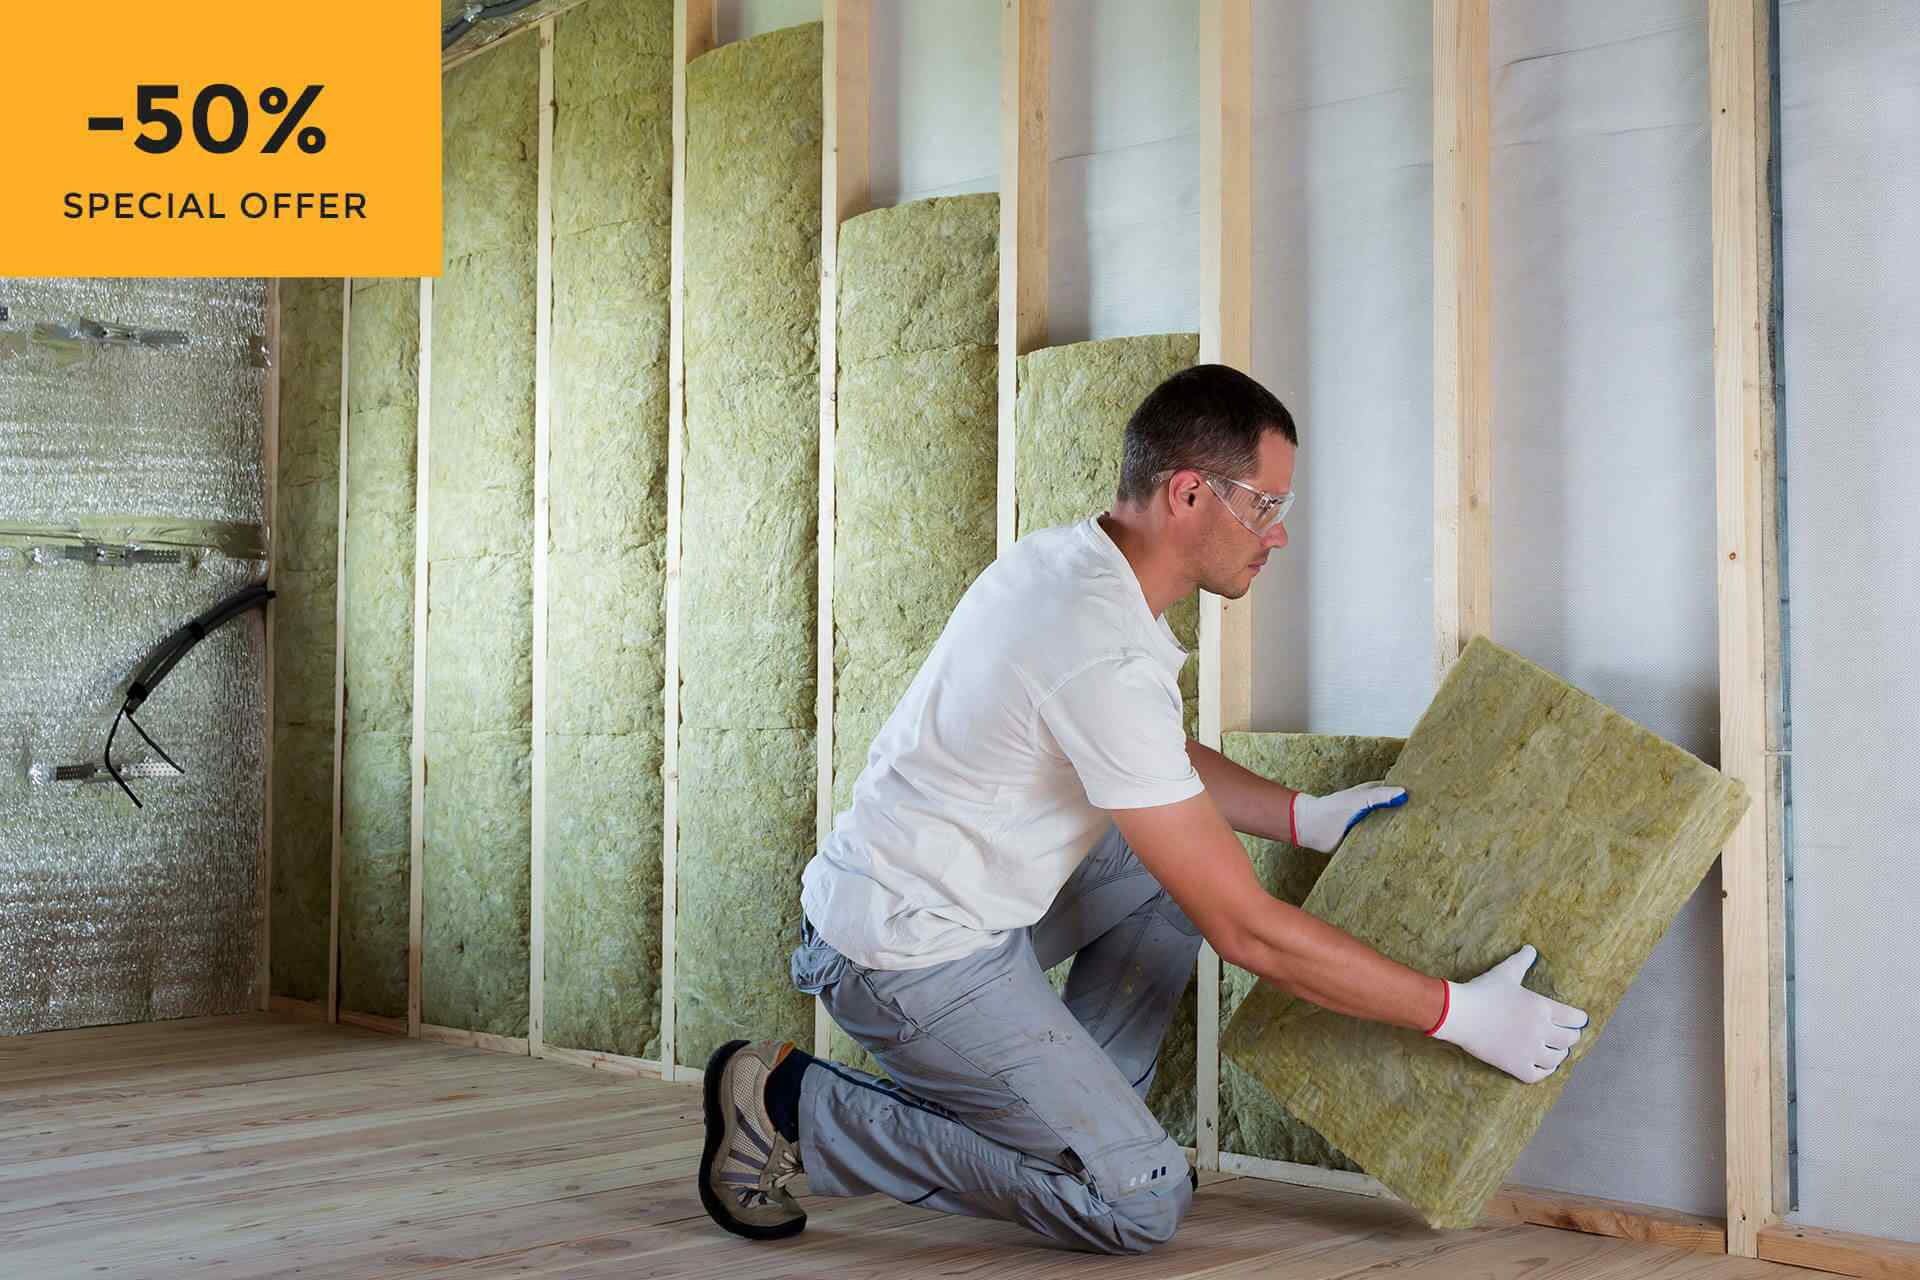 Special home reno pricing! Call for pricing in your area and home